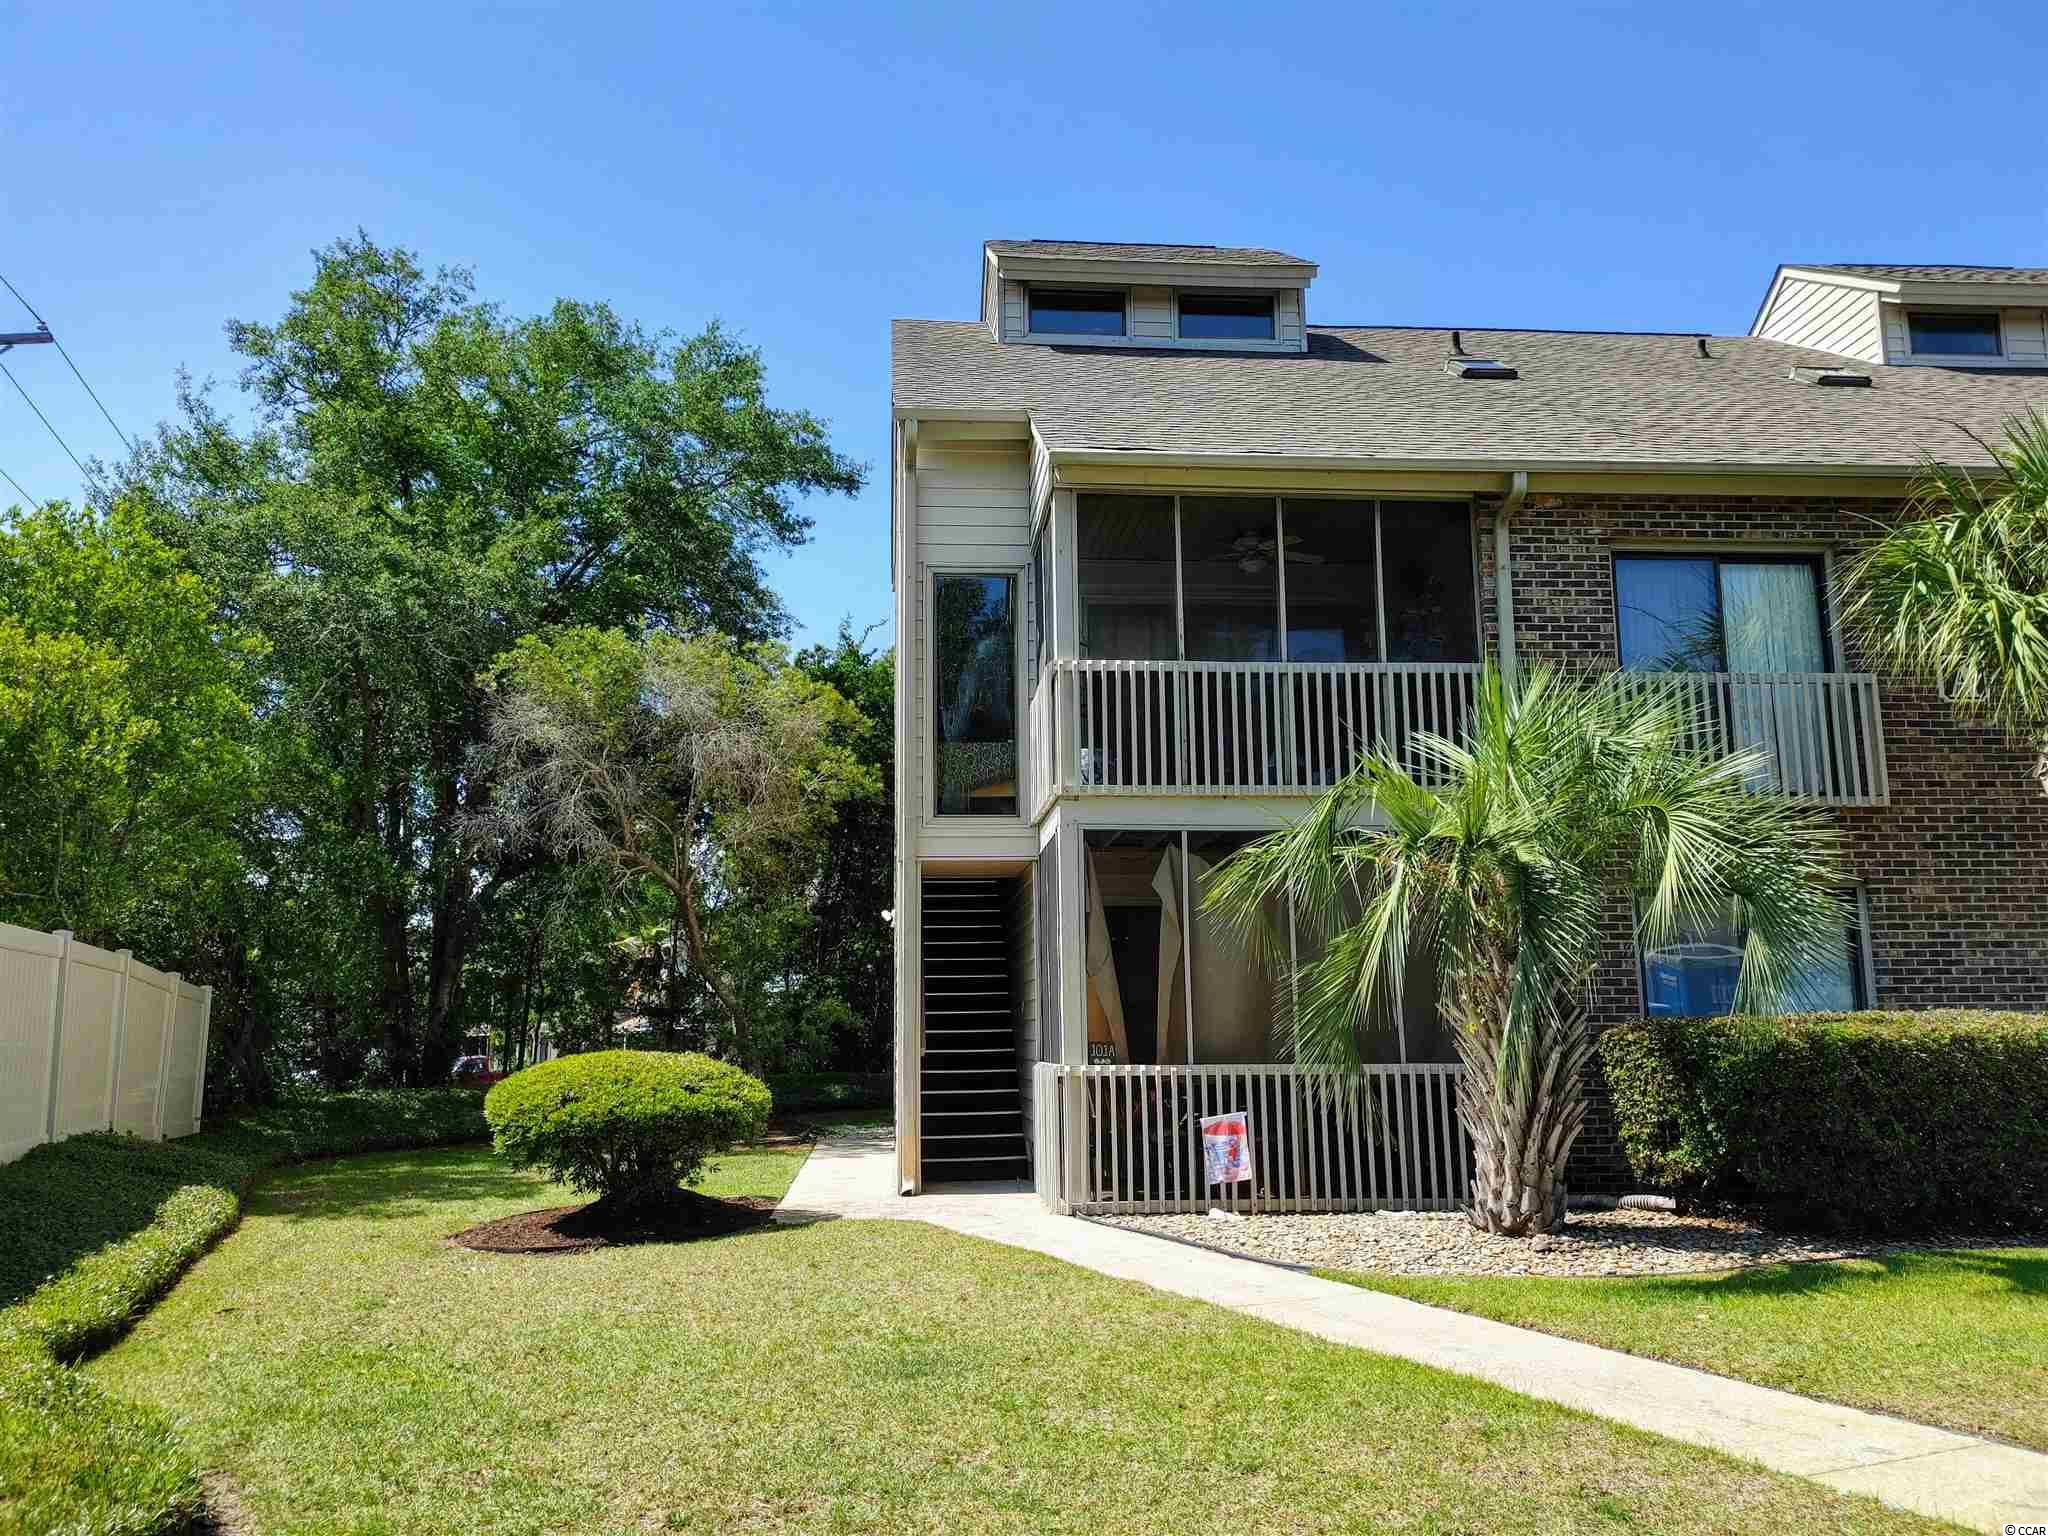 A must-see, well maintained, never rented, 1ST FLOOR beach condo in family-friendly Surfside Beach. A corner unit that features a private side entrance, unlike most of the others. This furnished, 2 bedroom, 2 full baths with walk-in showers, is move-in ready. This amazing condo can be your full-time, 2nd home or rental property, that offers a short golf-cart ride to the beach or relaxation by the community pool or private screened porch! It also features ceiling fans in the Living area, as well as both bedrooms, Pergo flooring in the Living area & Master bedroom, laminate flooring in the 2nd bedroom and tile flooring in the kitchen and both bathrooms. The kitchen also has beautiful Corian countertops and the Master bedroom features black-out curtains. A new roof was installed in 2017 and a new HVAC system in July 2018. Freshly painted, new lights and fixtures in mid 2019. Don't forget about the ample outside storage closet for all of your beach toys! Centrally located just minutes away from the beach, golfing, the Marshwalk, Market Common, great restaurants and many other Myrtle Beach attractions. Owner allowed 1 pet up to 30 lbs. Items in all 5 closets, do not convey. Square footage is approximate and not guaranteed. Buyer is responsible for verification.